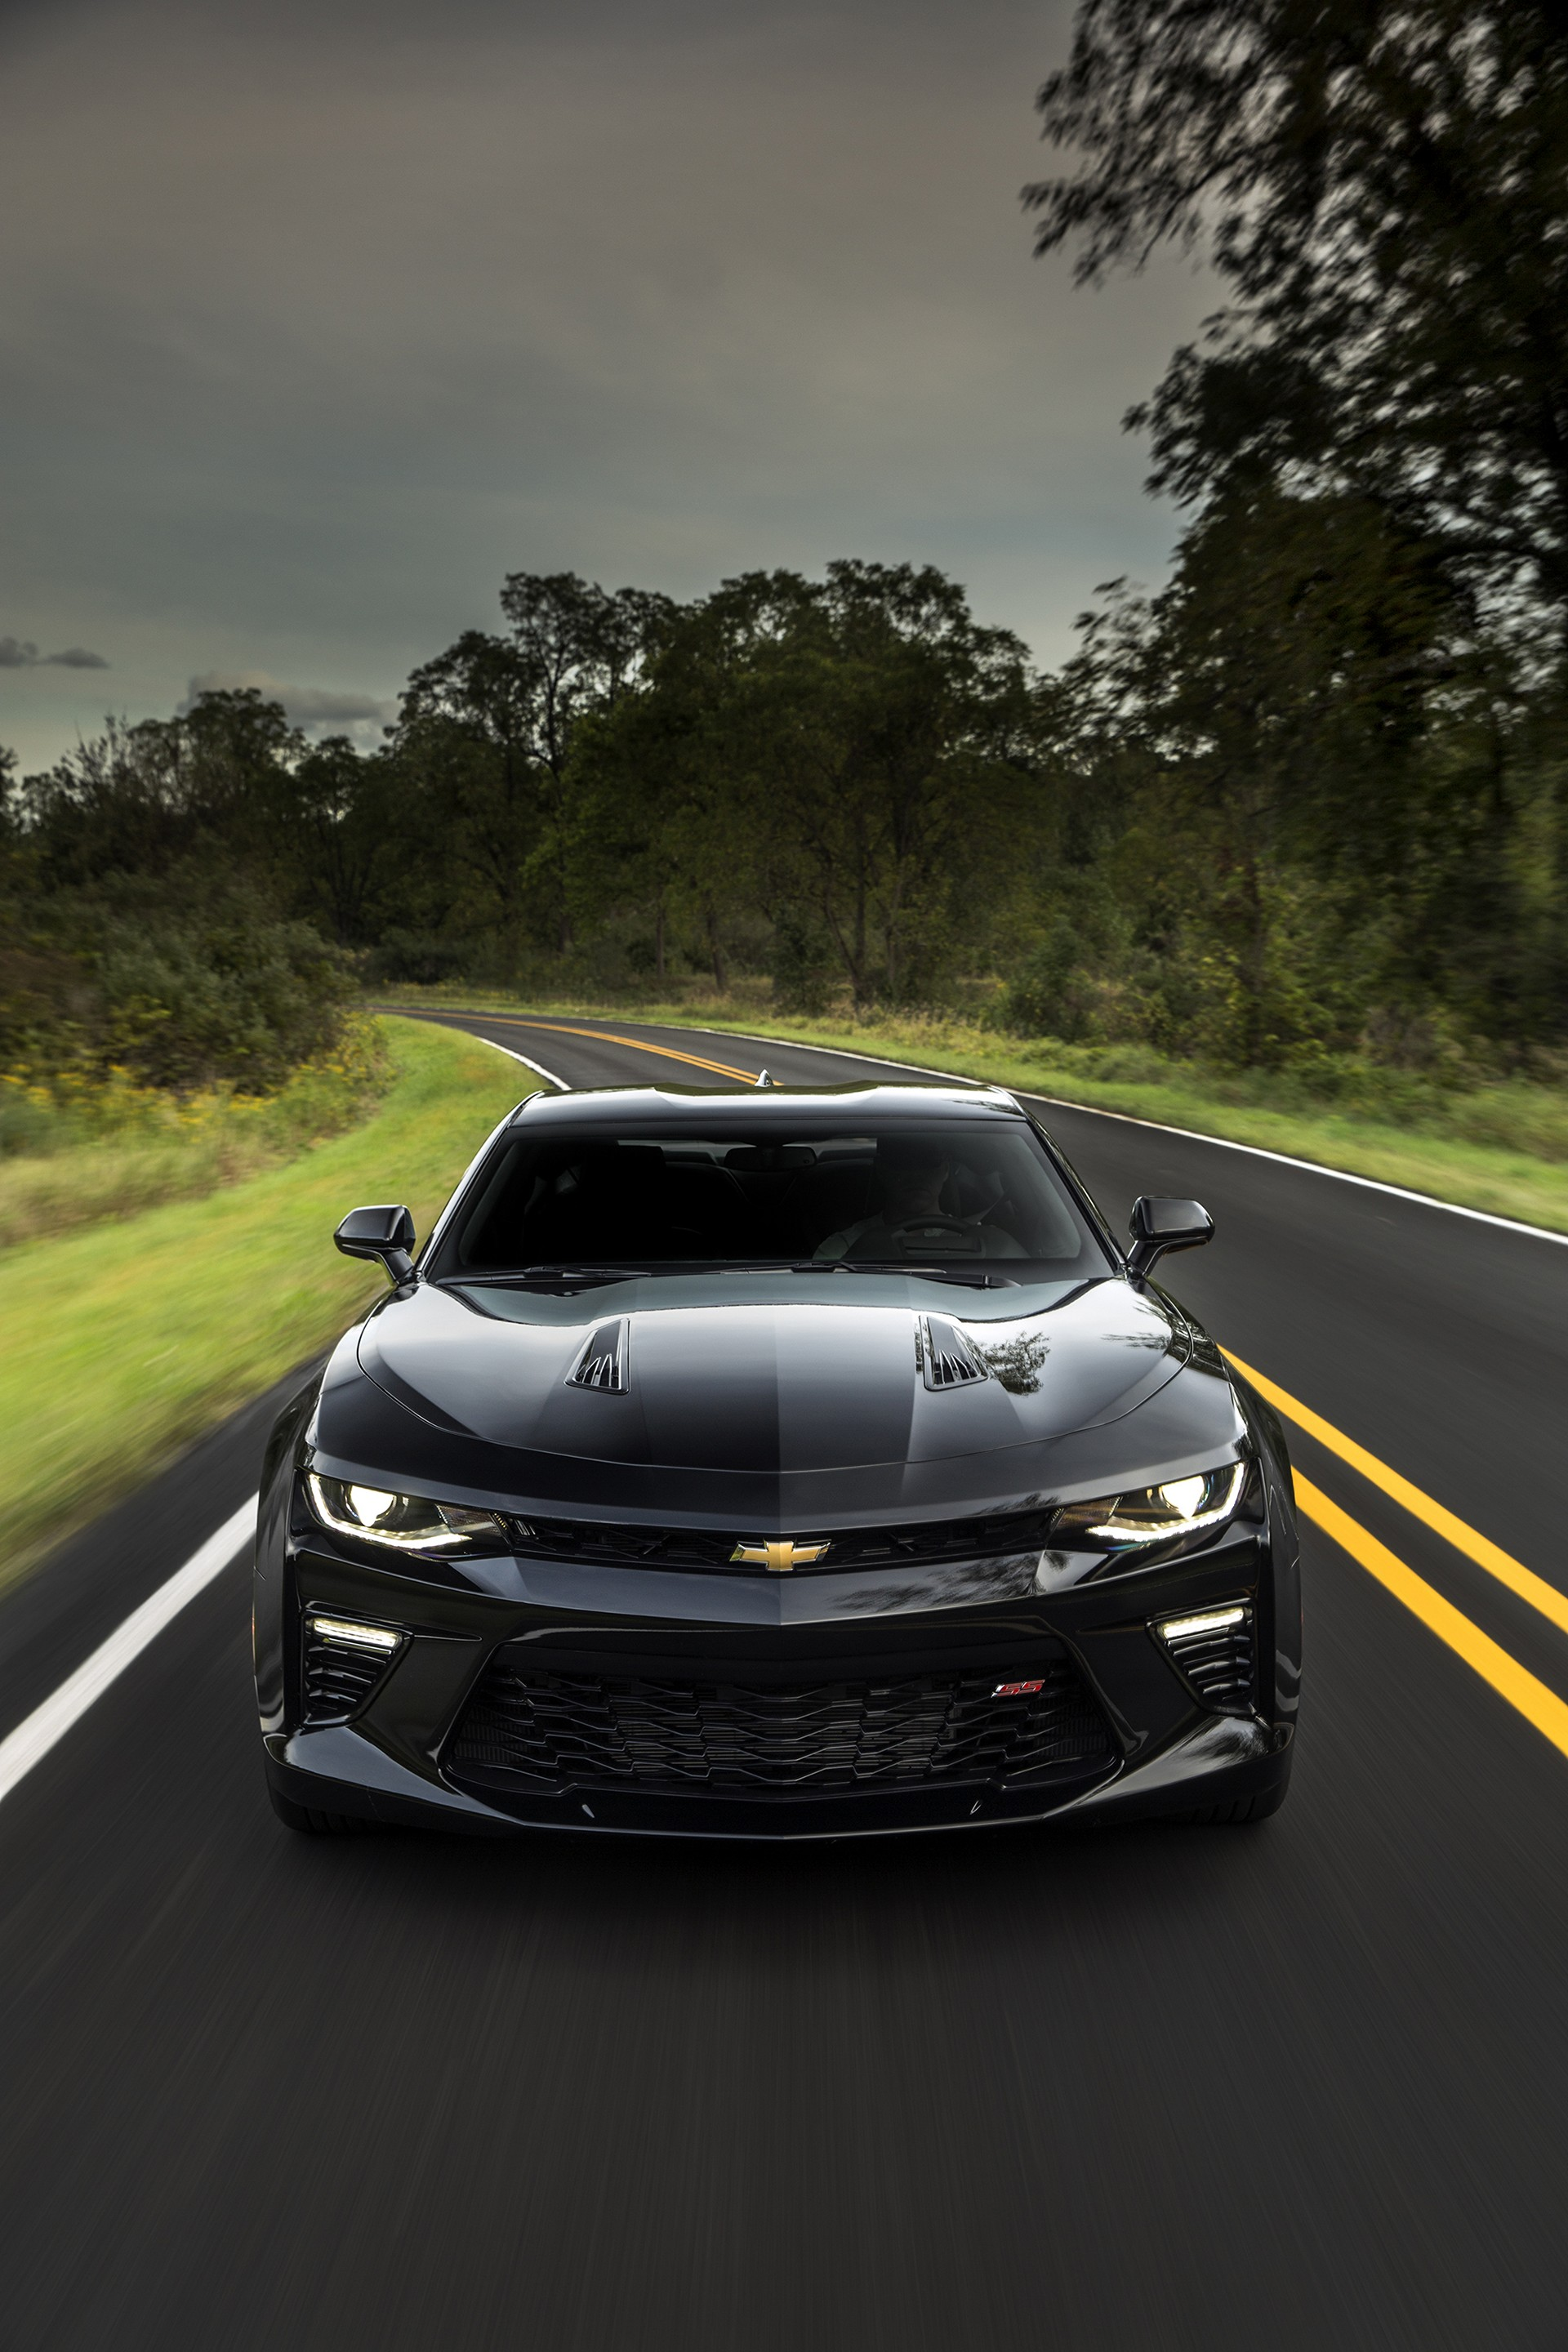 2016 chevrolet camaro review carrrs auto portal. Black Bedroom Furniture Sets. Home Design Ideas